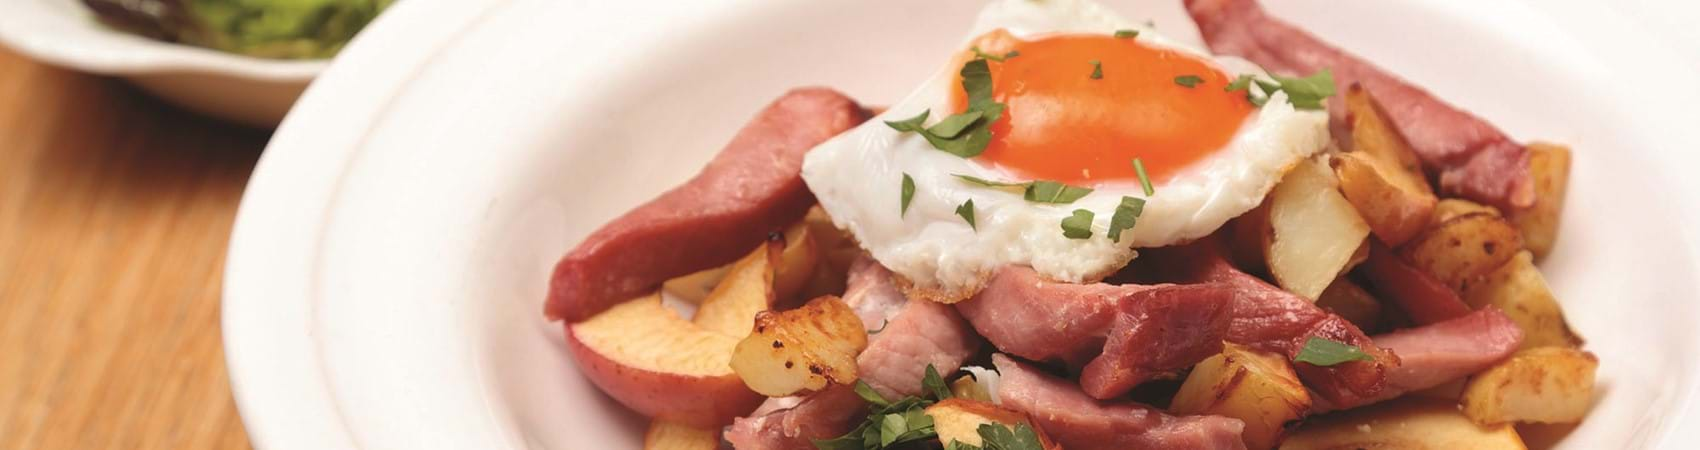 Potato Bake With Gammon And Apple